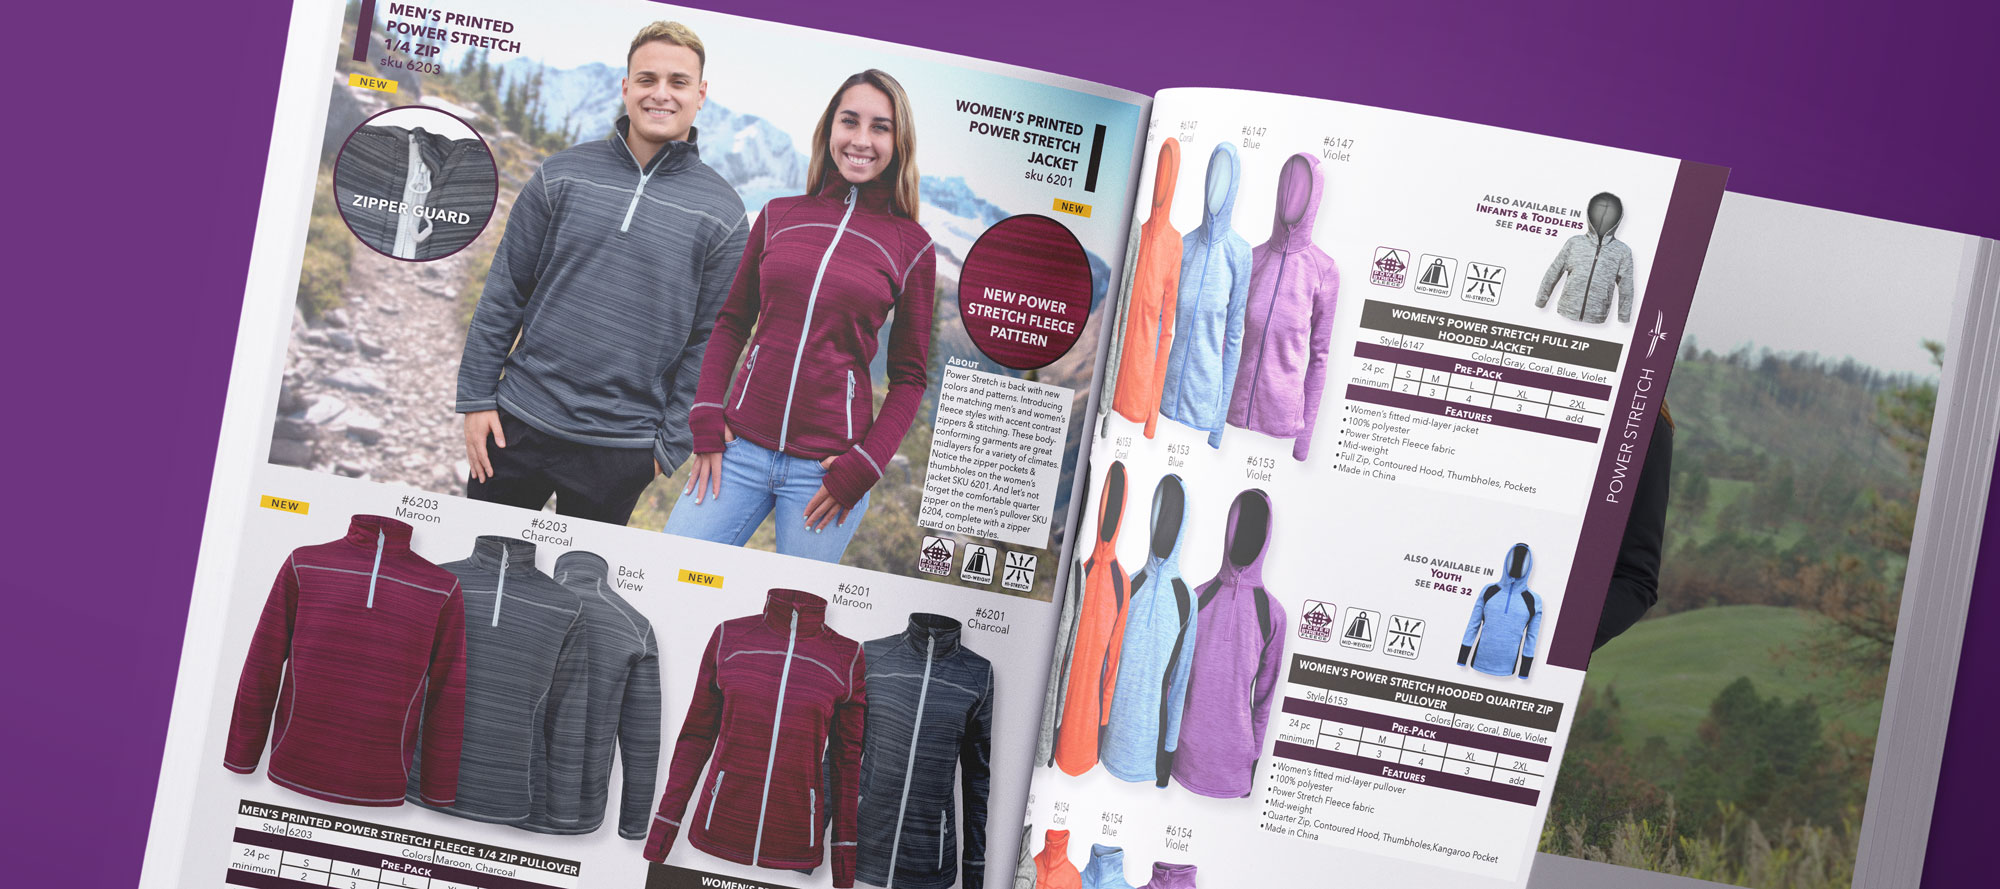 renegade club catalog page spread models, woman man wearing gray maroon red jacket, coarse weave fleece, wholesale jackets, zippers, zipper guard, new power stretch fleece fabric